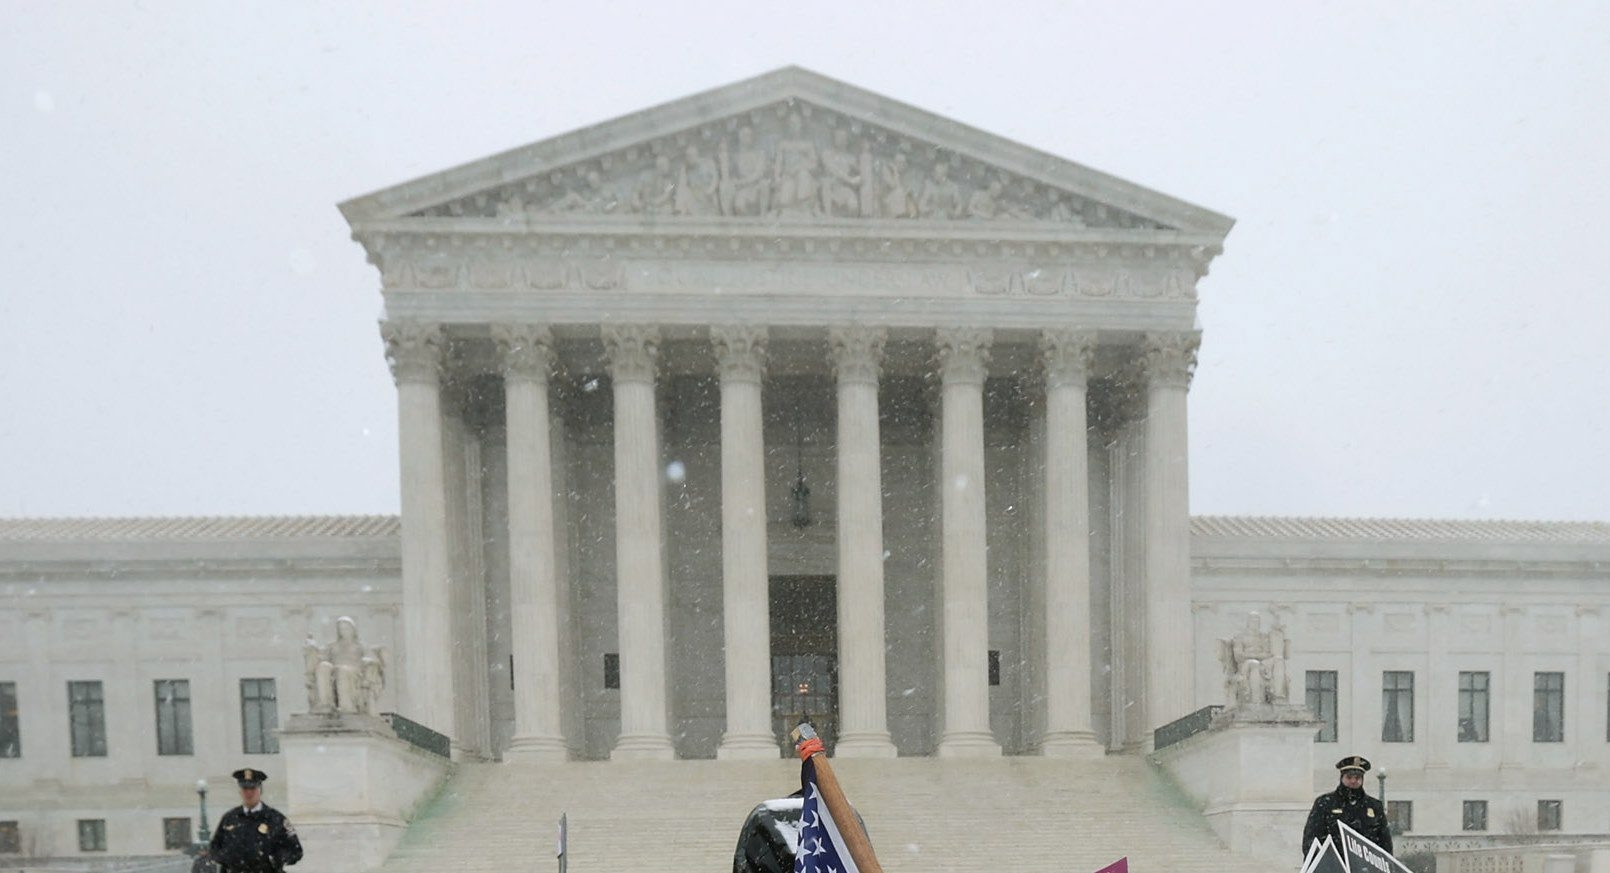 WASHINGTON, DC – MARCH 25:  Demonstrators who disagree stand back-to-back during a rally outside of the U.S. Supreme Court during oral arguments in Sebelius v. Hobby Lobby March 25, 2014 in Washington, DC. The court heard from lawyers on both sides of Sebelius v. Hobby Lobby, a case that may determine whether the Religious Freedom Restoration Act of 1993 allows a for-profit corporation to deny its employees the health coverage of contraceptives to which the employees are otherwise entitled by federal law, based on the religious objections of the corporation's owners.  (Photo by Chip Somodevilla/Getty Images)